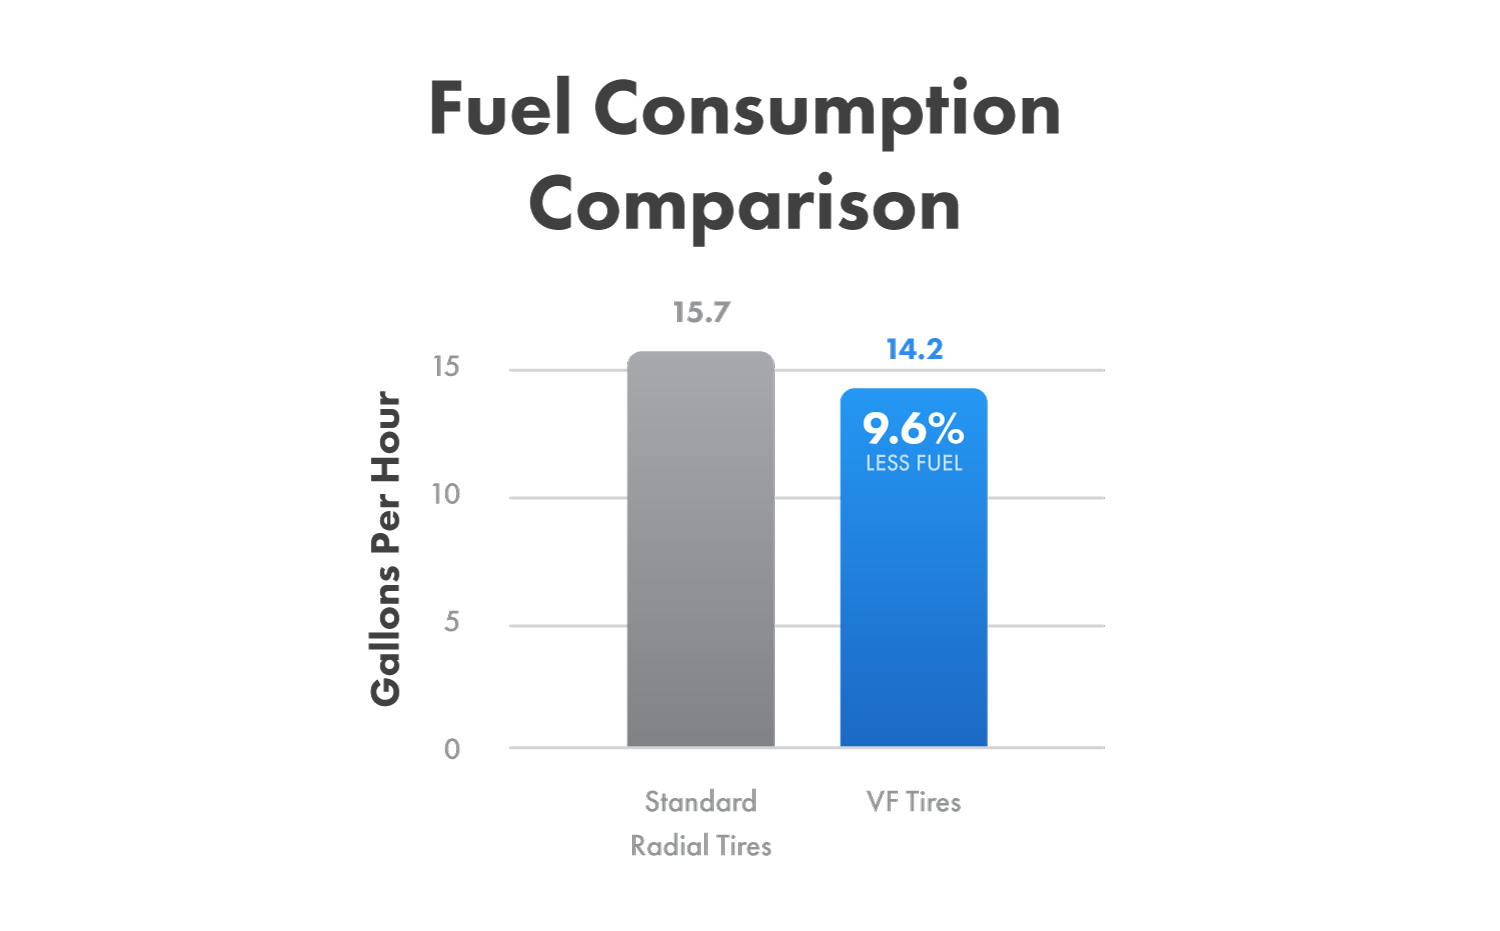 Fuel consumption comparison between VF tires and standard radial tires.